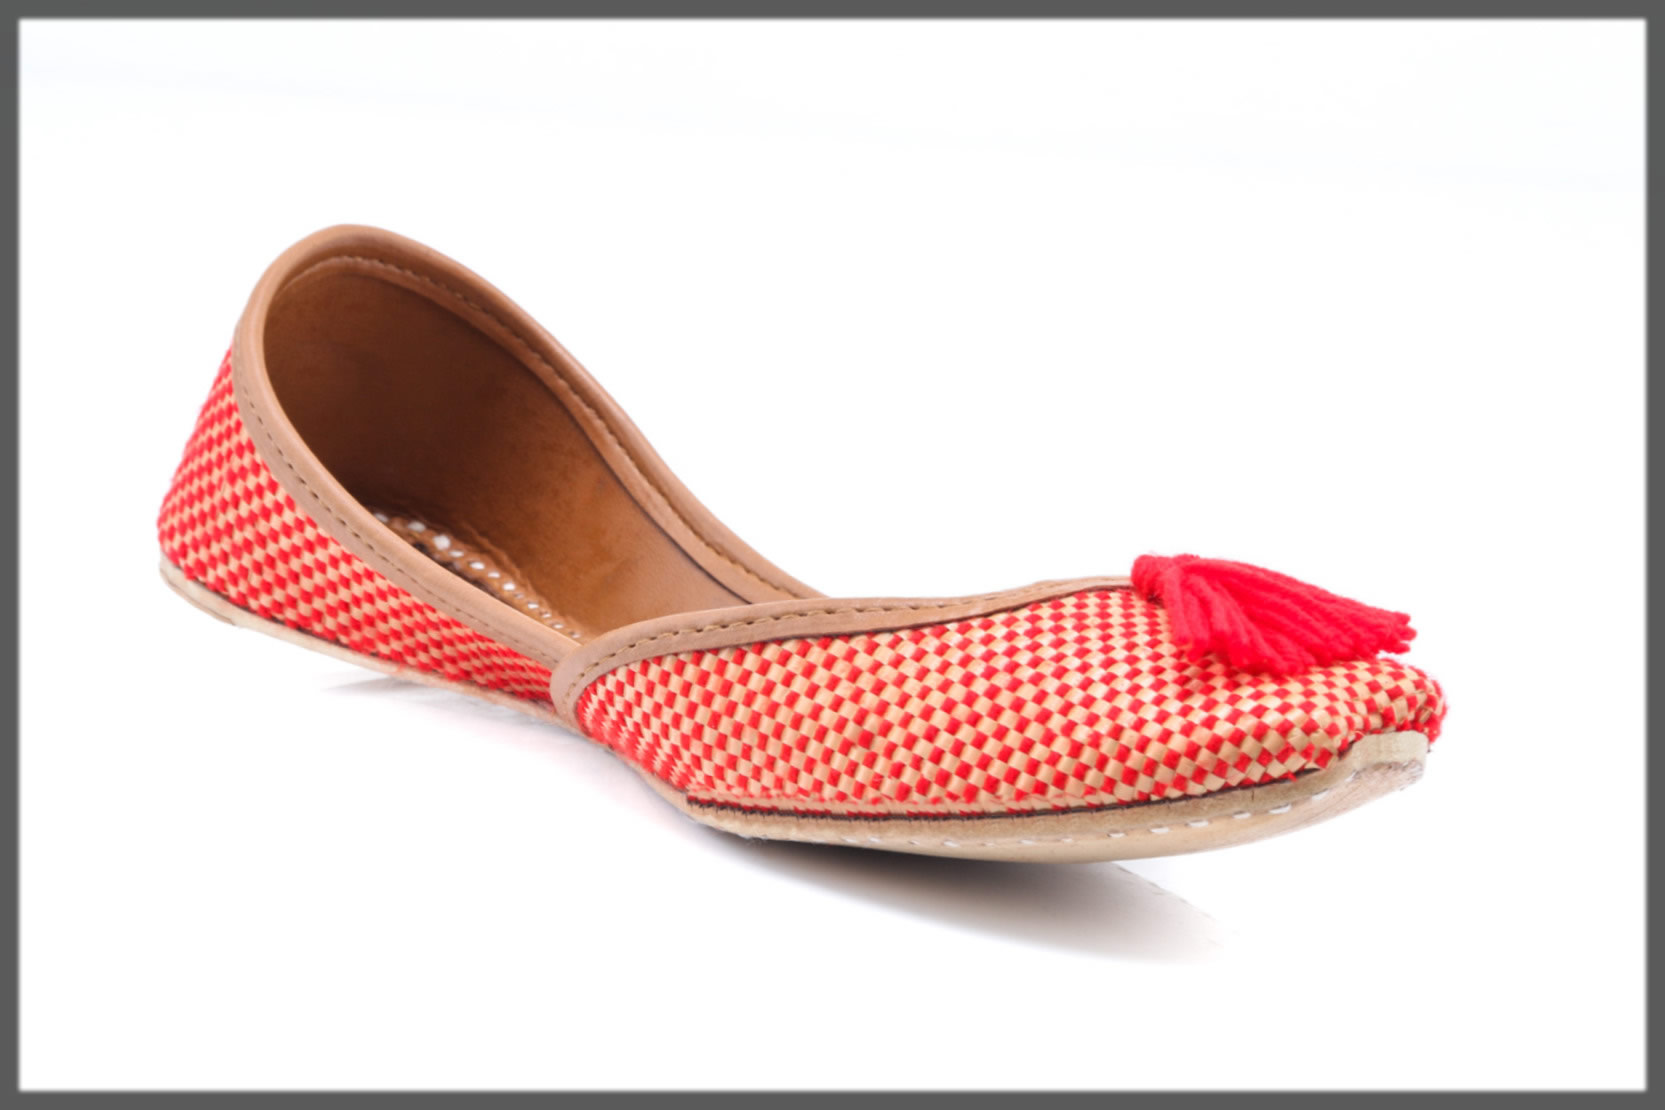 red classic khussa for women